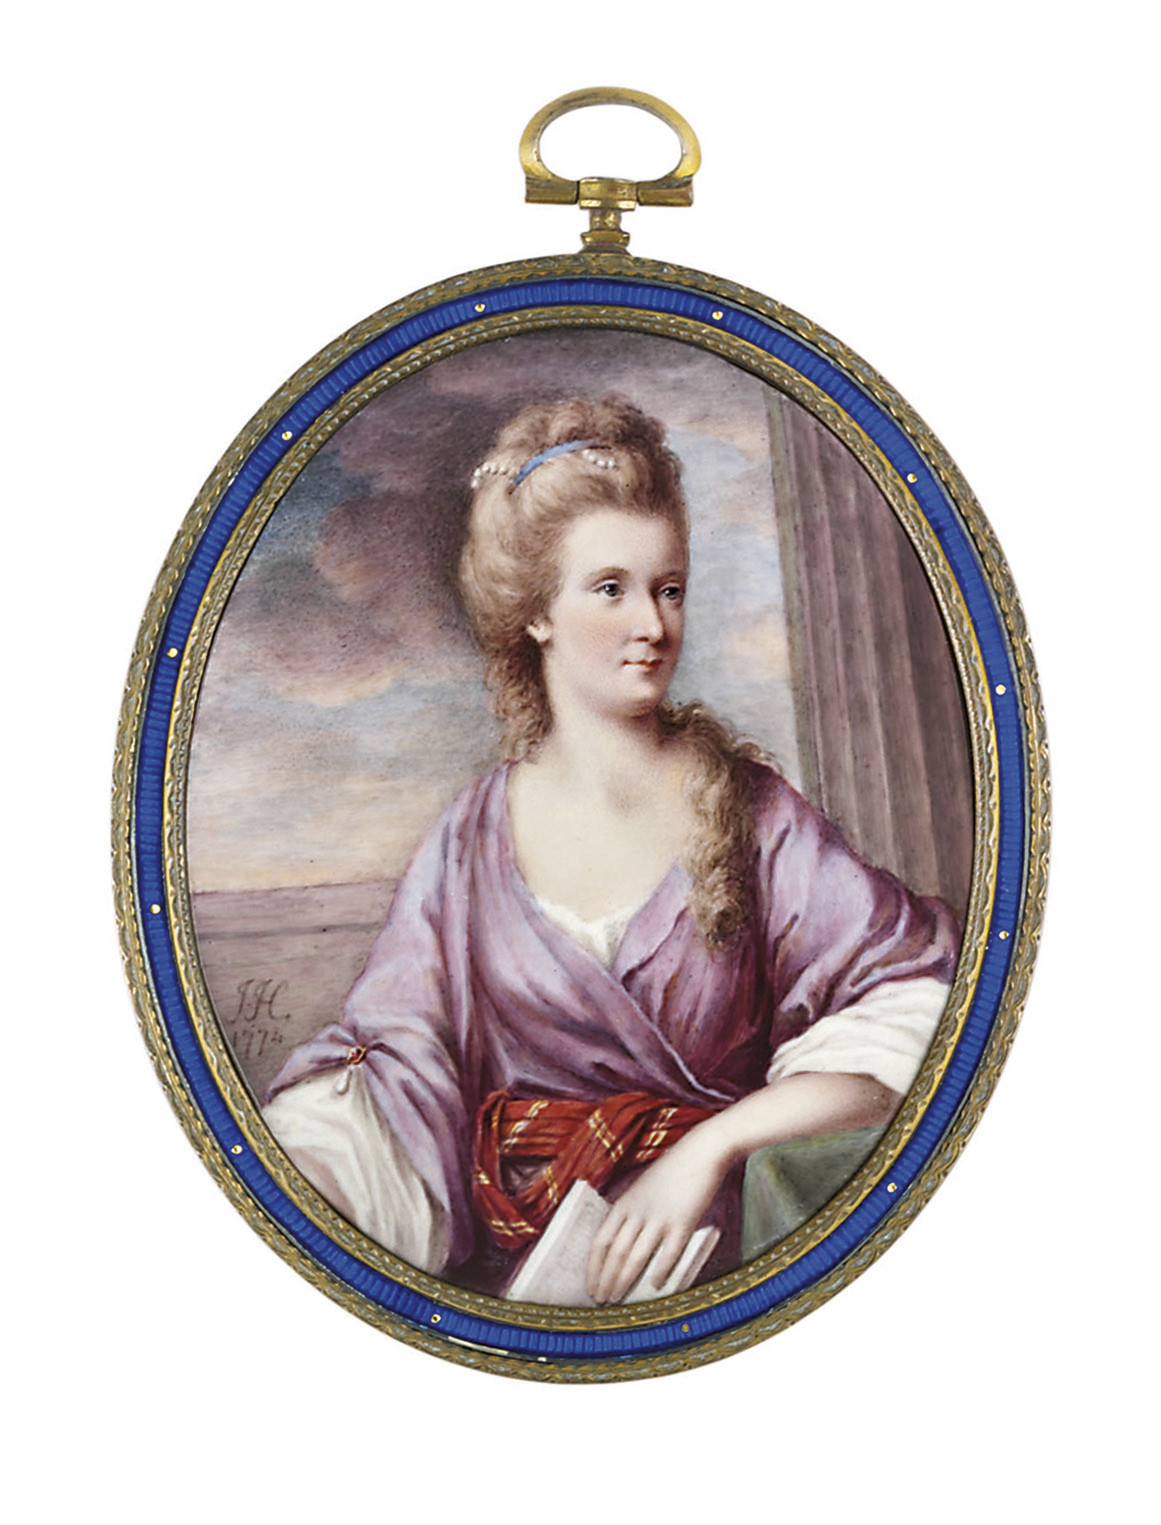 A lady called Lady Rushout, in puce open gown with ruby and pendant pearl brooch fastening her left sleeve, gold-striped crimson looped sash, white linen shift, pearls and blue ribbon adorning her upswept fair hair, an open book in her left hand; landscape and classicising background